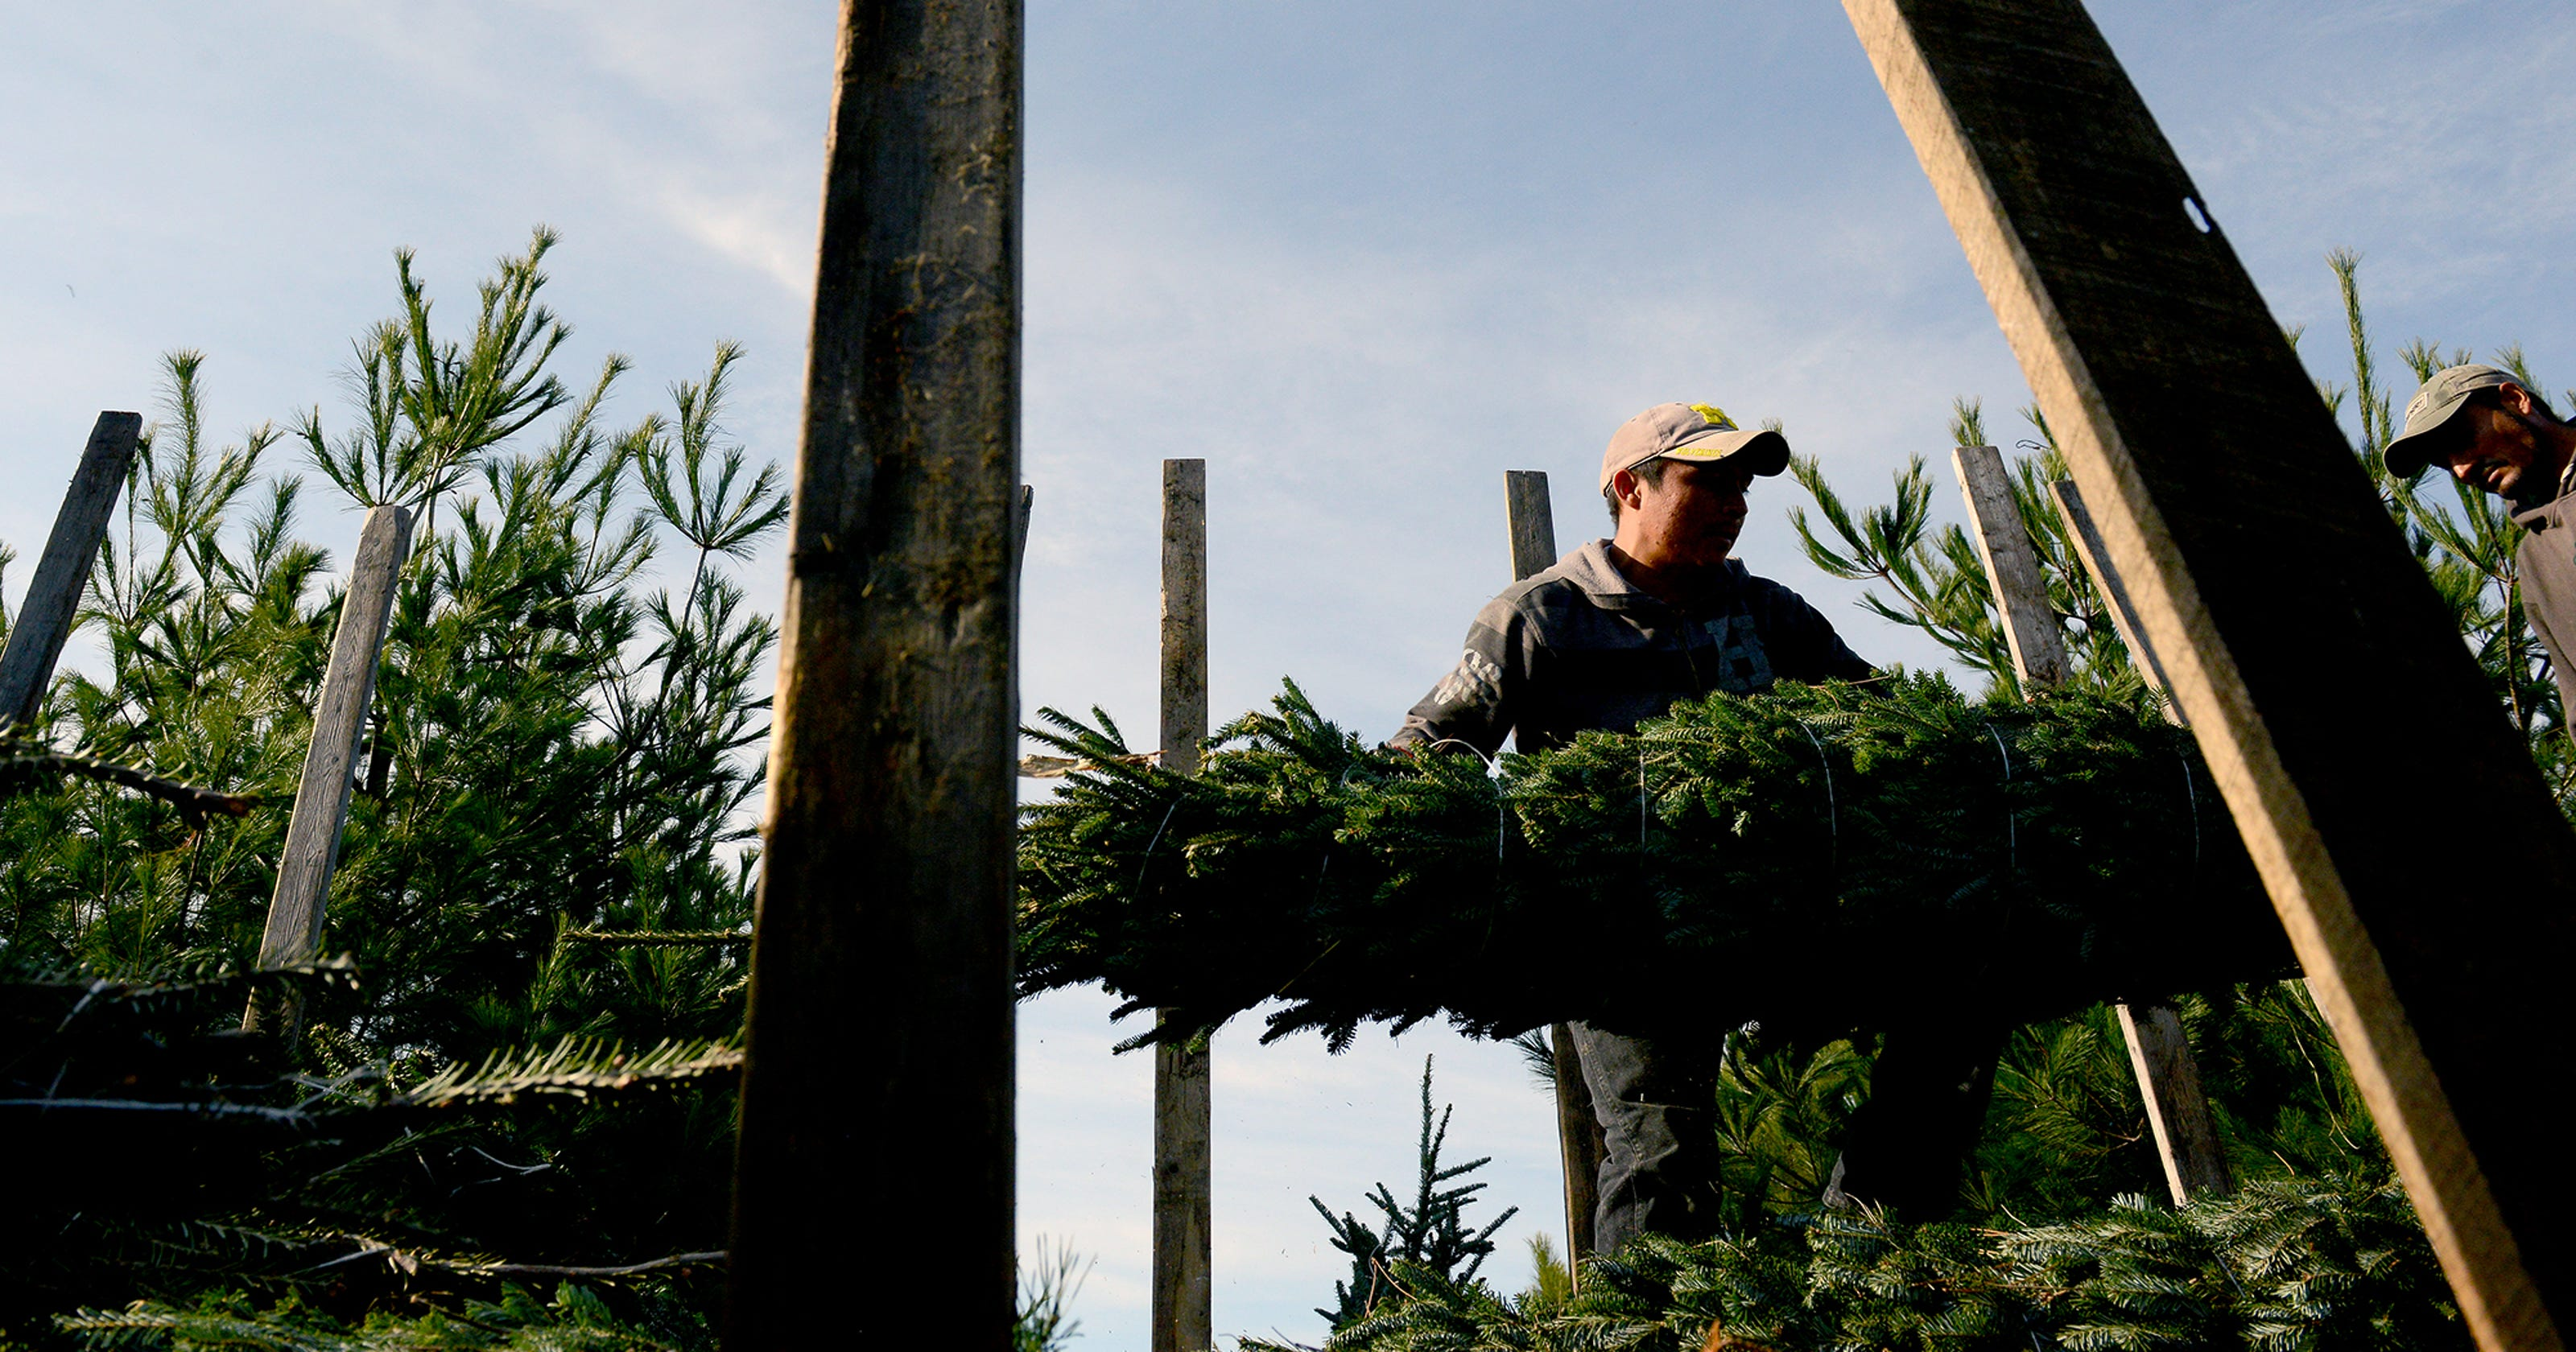 Where do Christmas trees come from? Michigan!